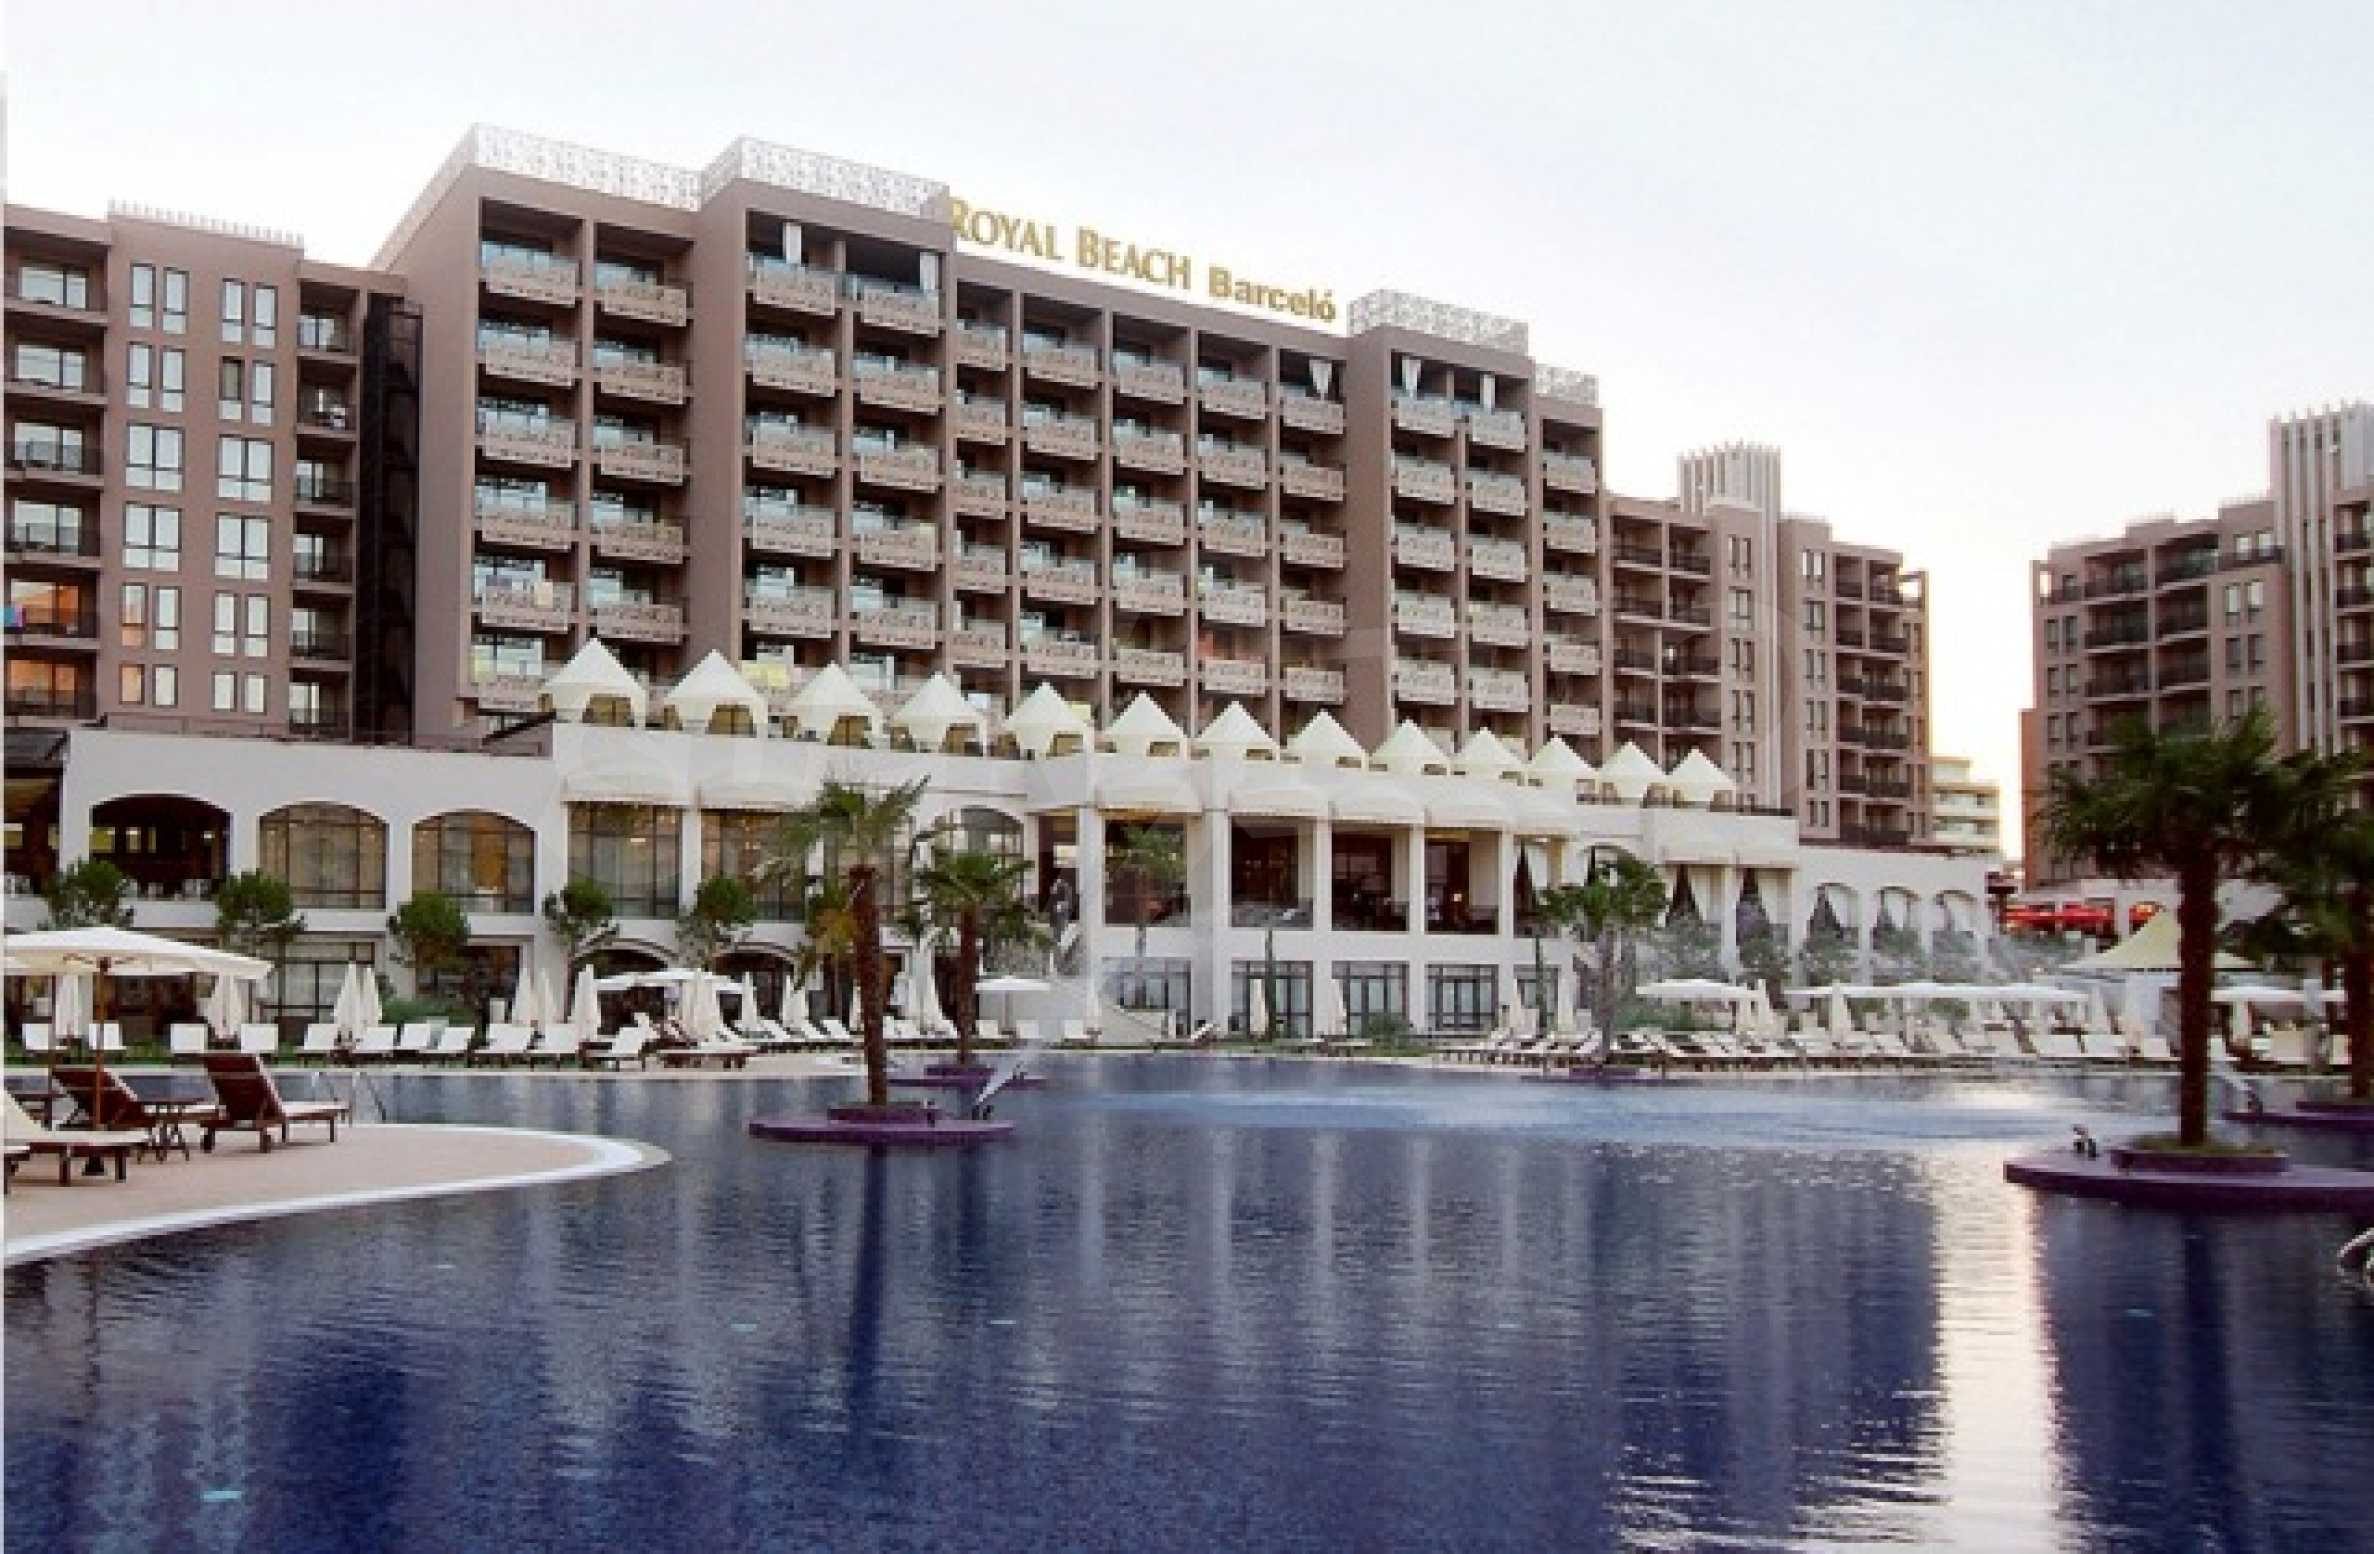 Fully furnished two-bedroom apartment in Royal Beach Barcelo